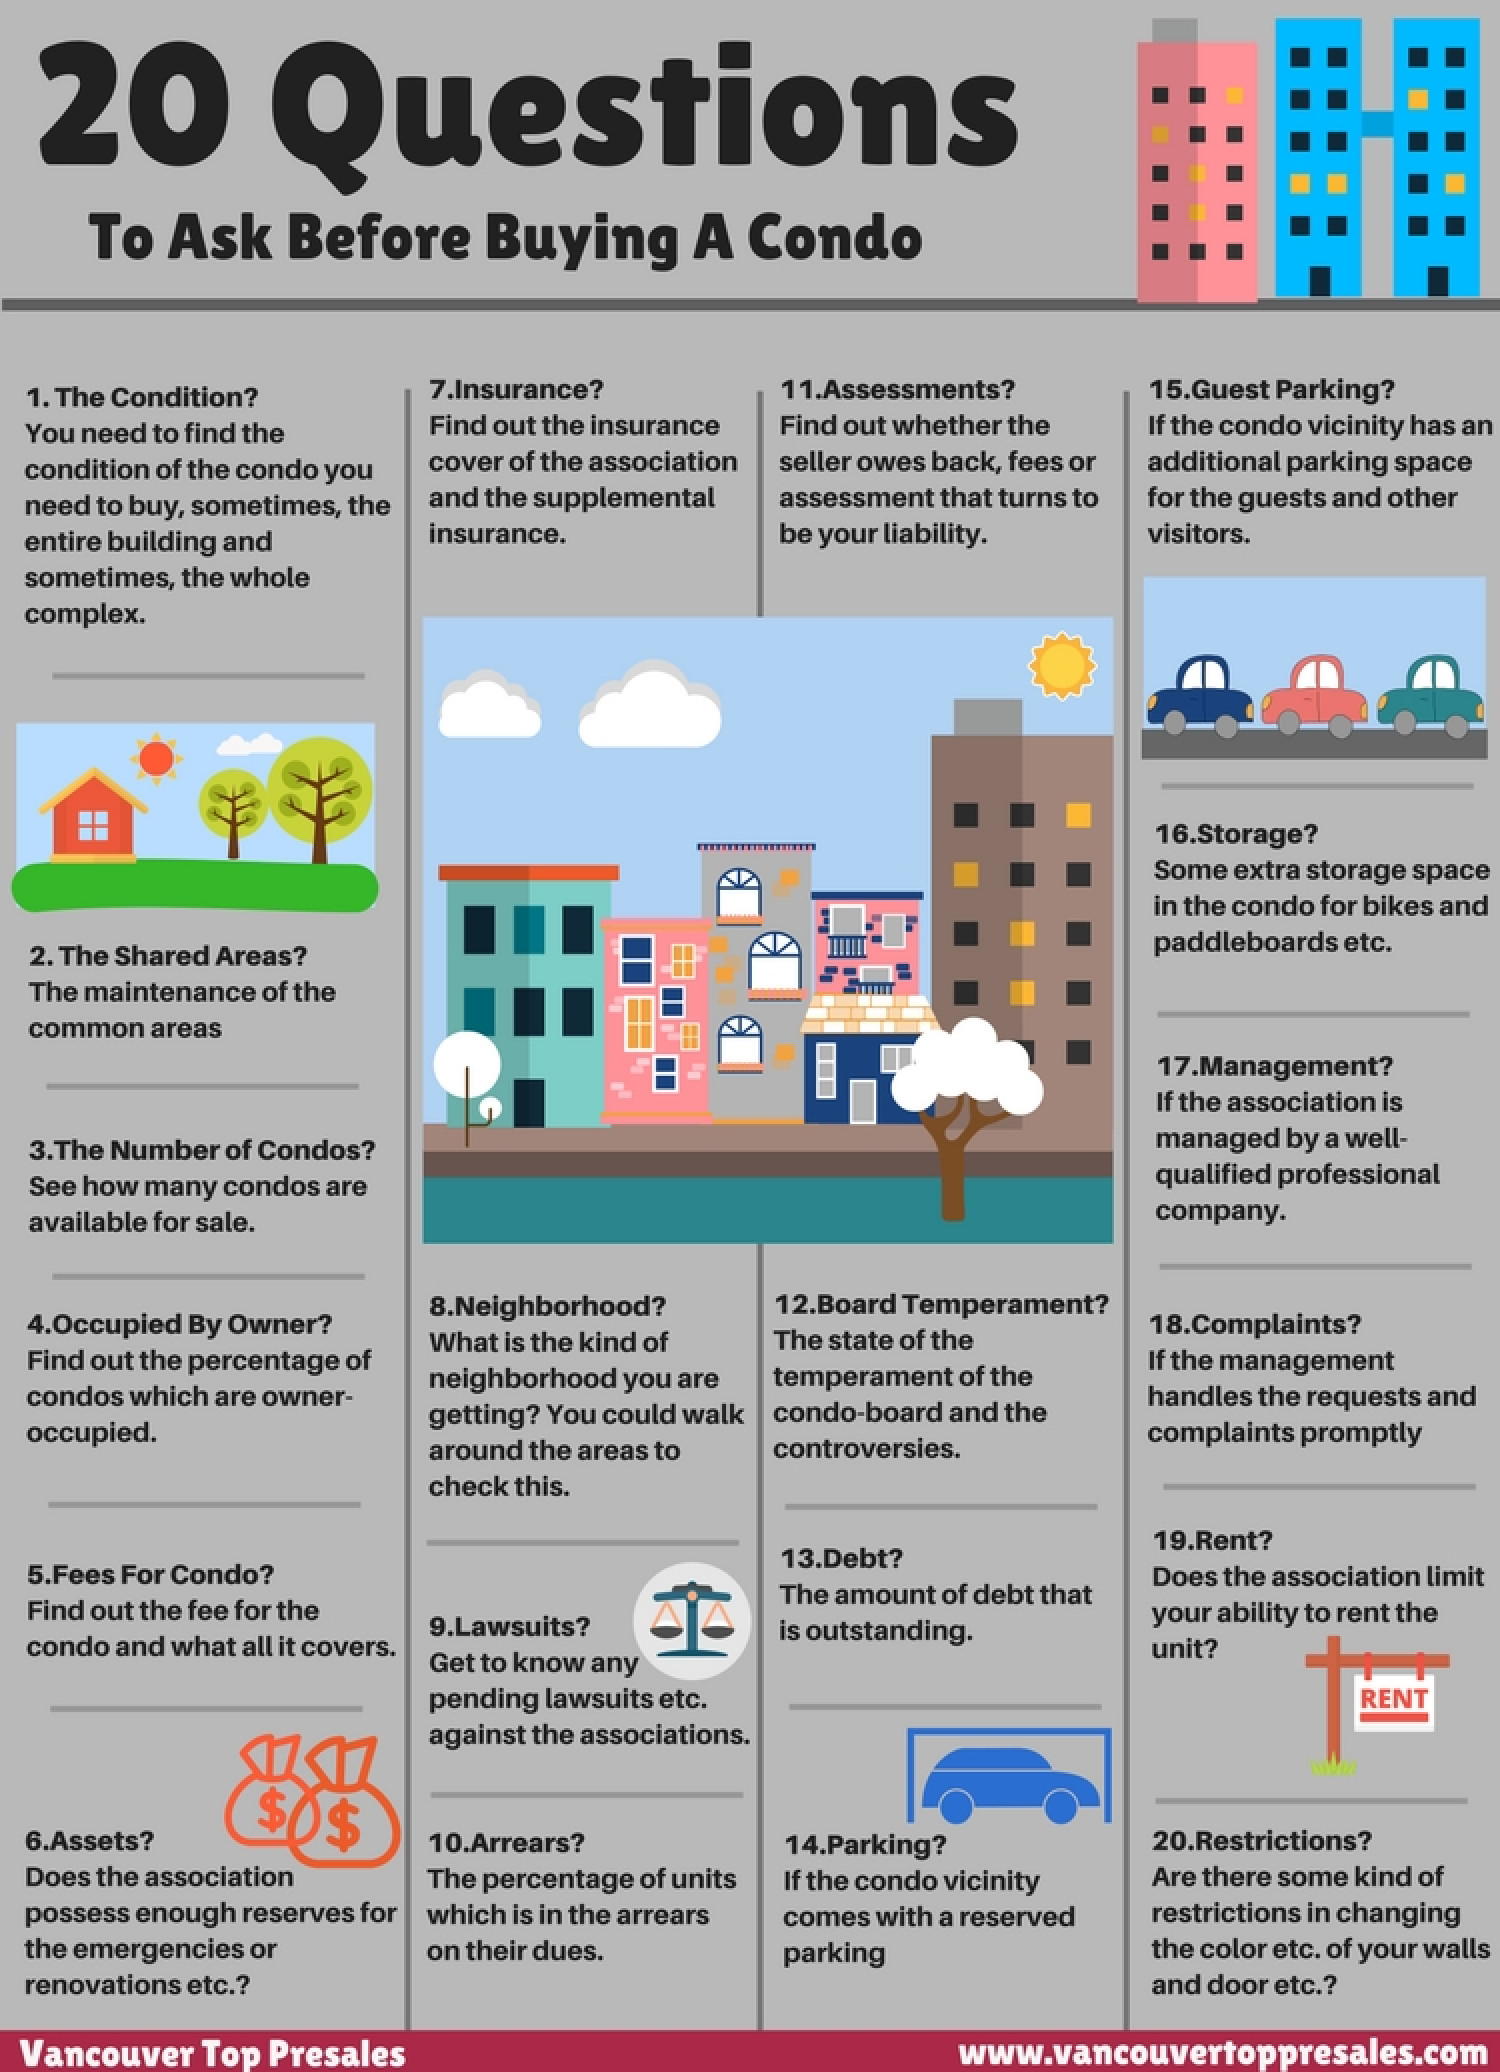 20 Questions To Ask Before Buying A Condo Infographic